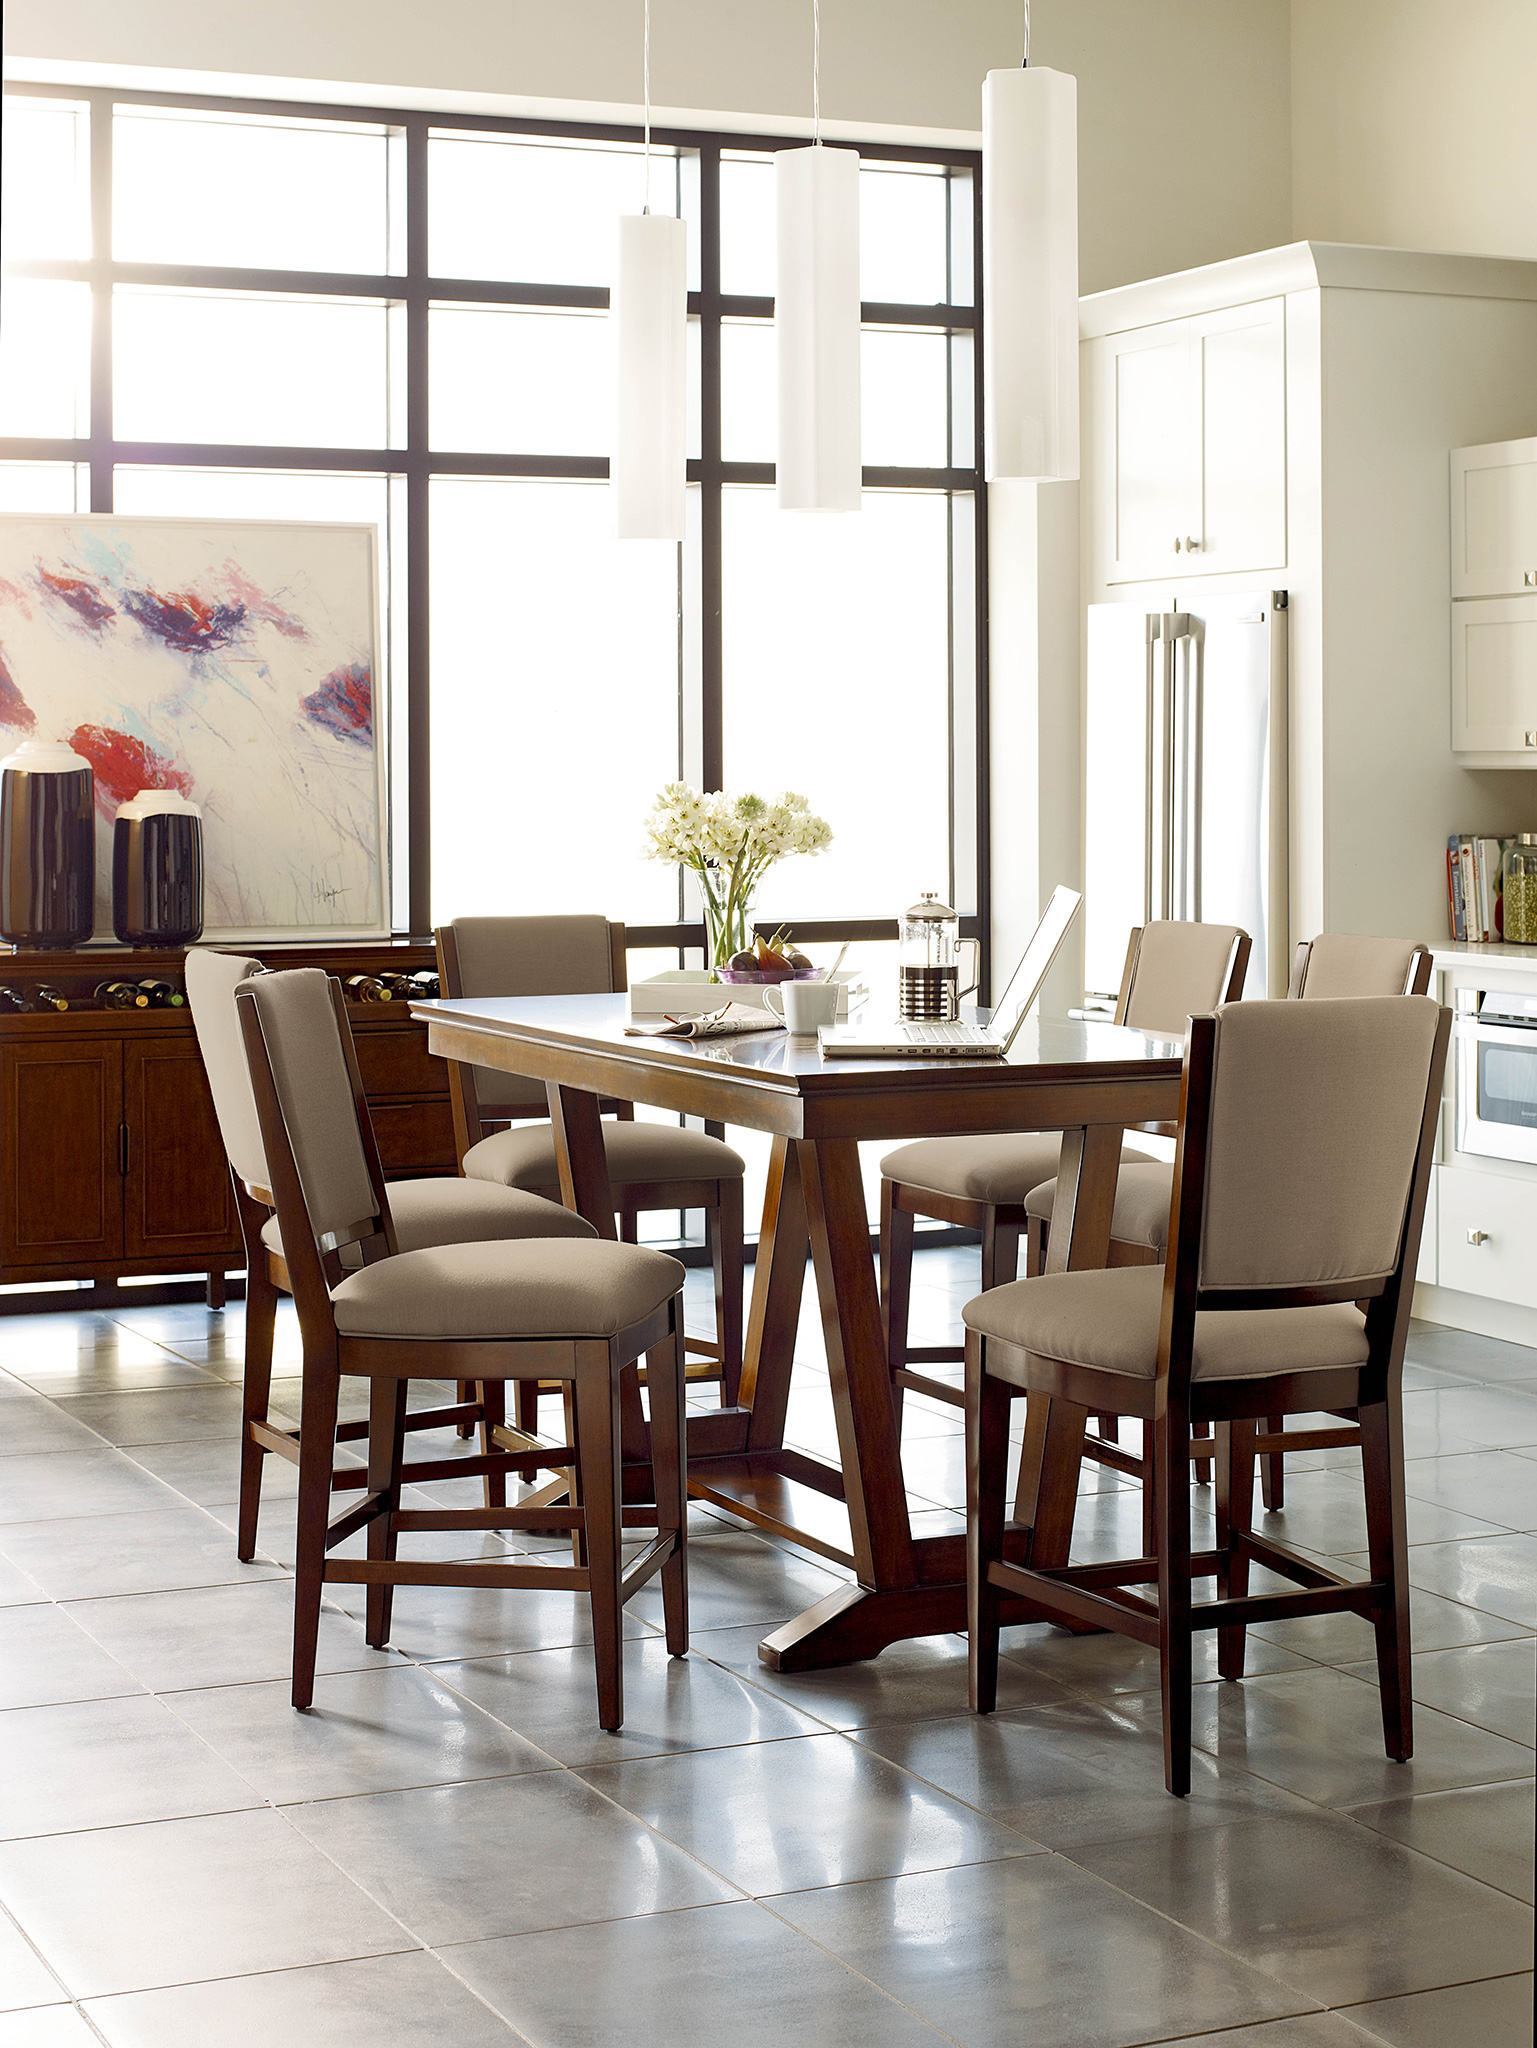 Chattanooga Kitchen Table Ideas Kincaid Spectrum table with Amaretto finish from EF Brannon Furniture store in Chattanooga TN